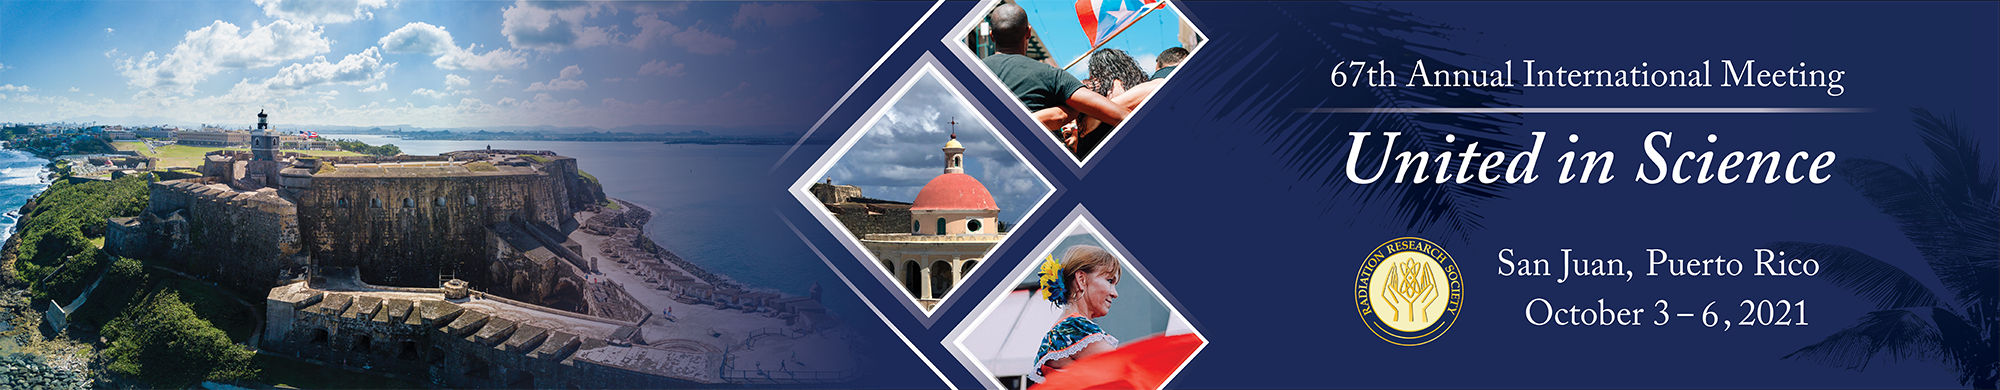 United in Science - RRS 67th Annual International Meeting - October 3 - 6, 2021 in San Juan, Puerto Rico